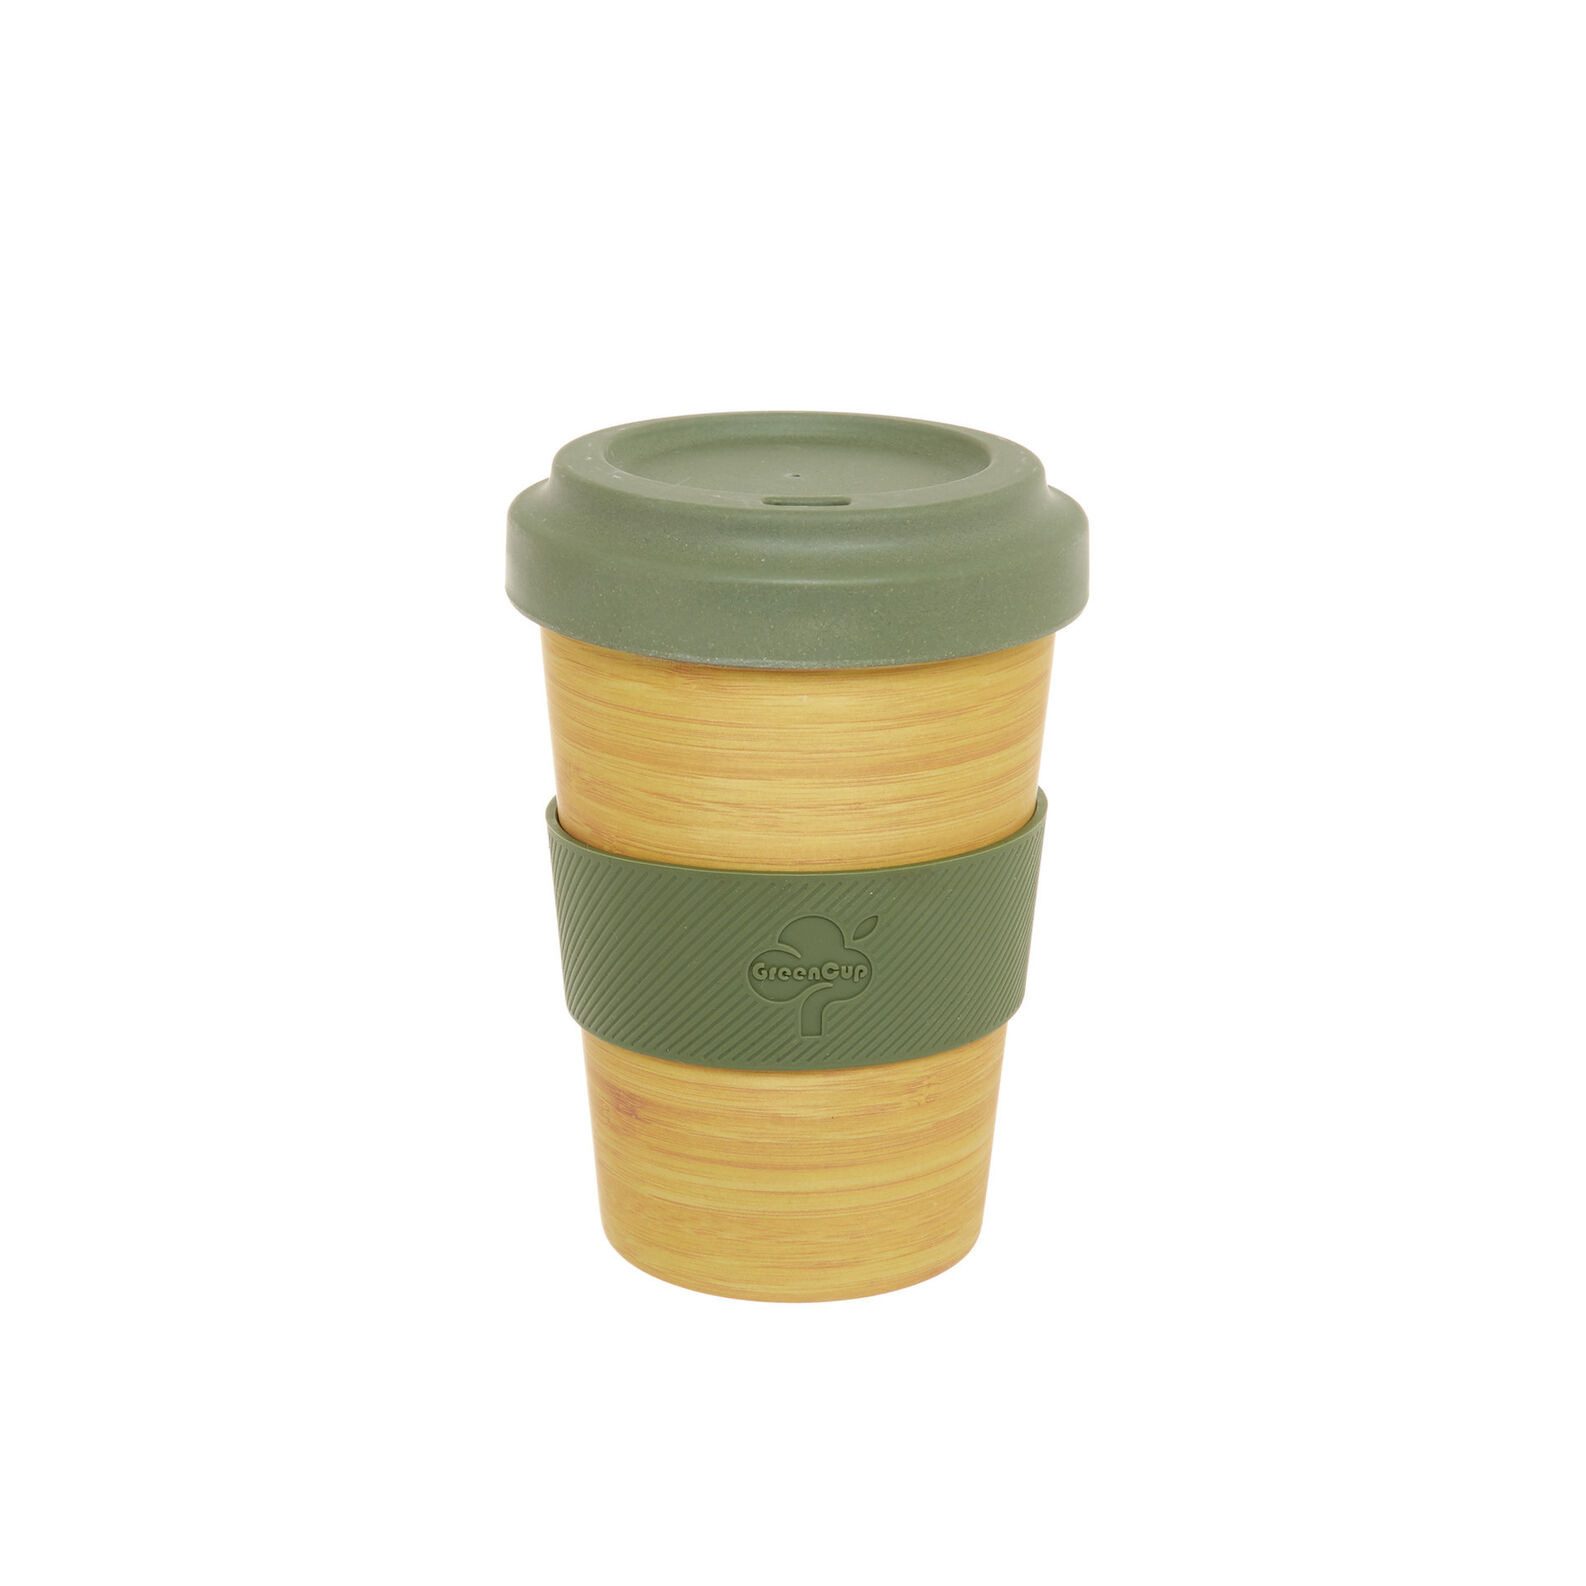 Take away cup in wood and bamboo fibre